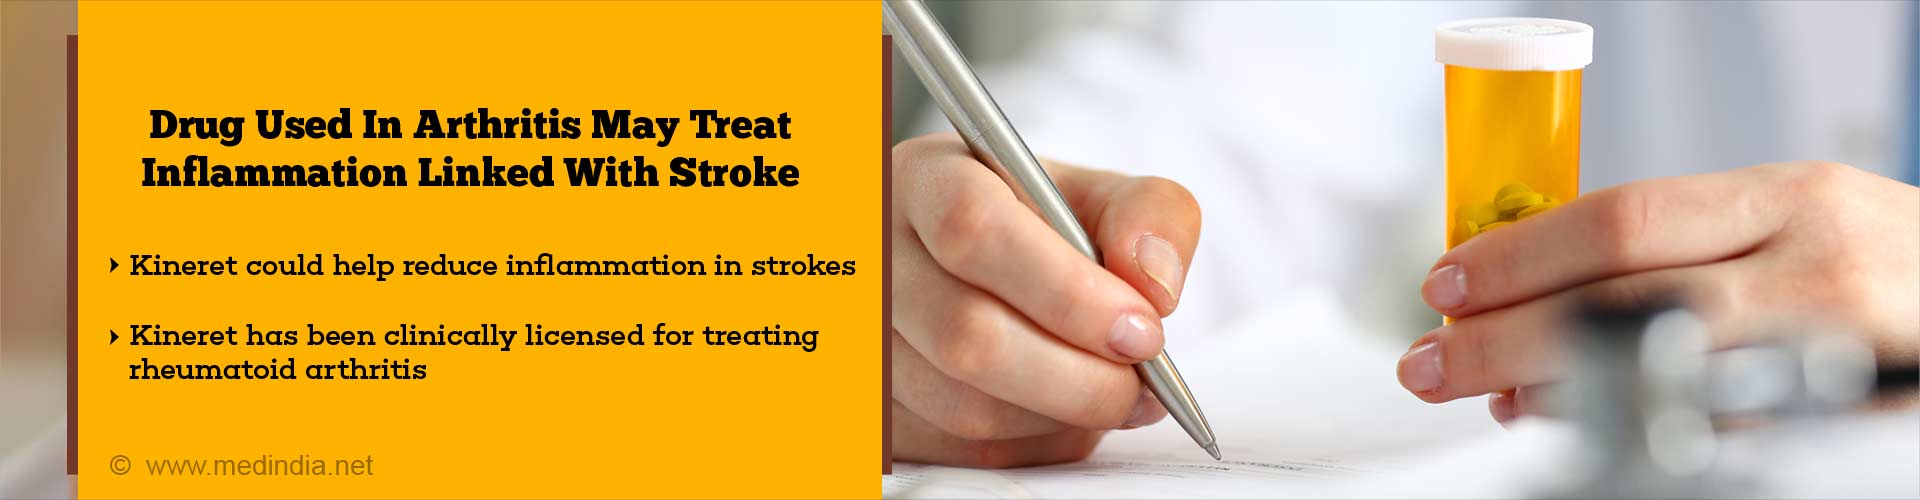 drug used in arthritis may treat inflammation linked with stroke